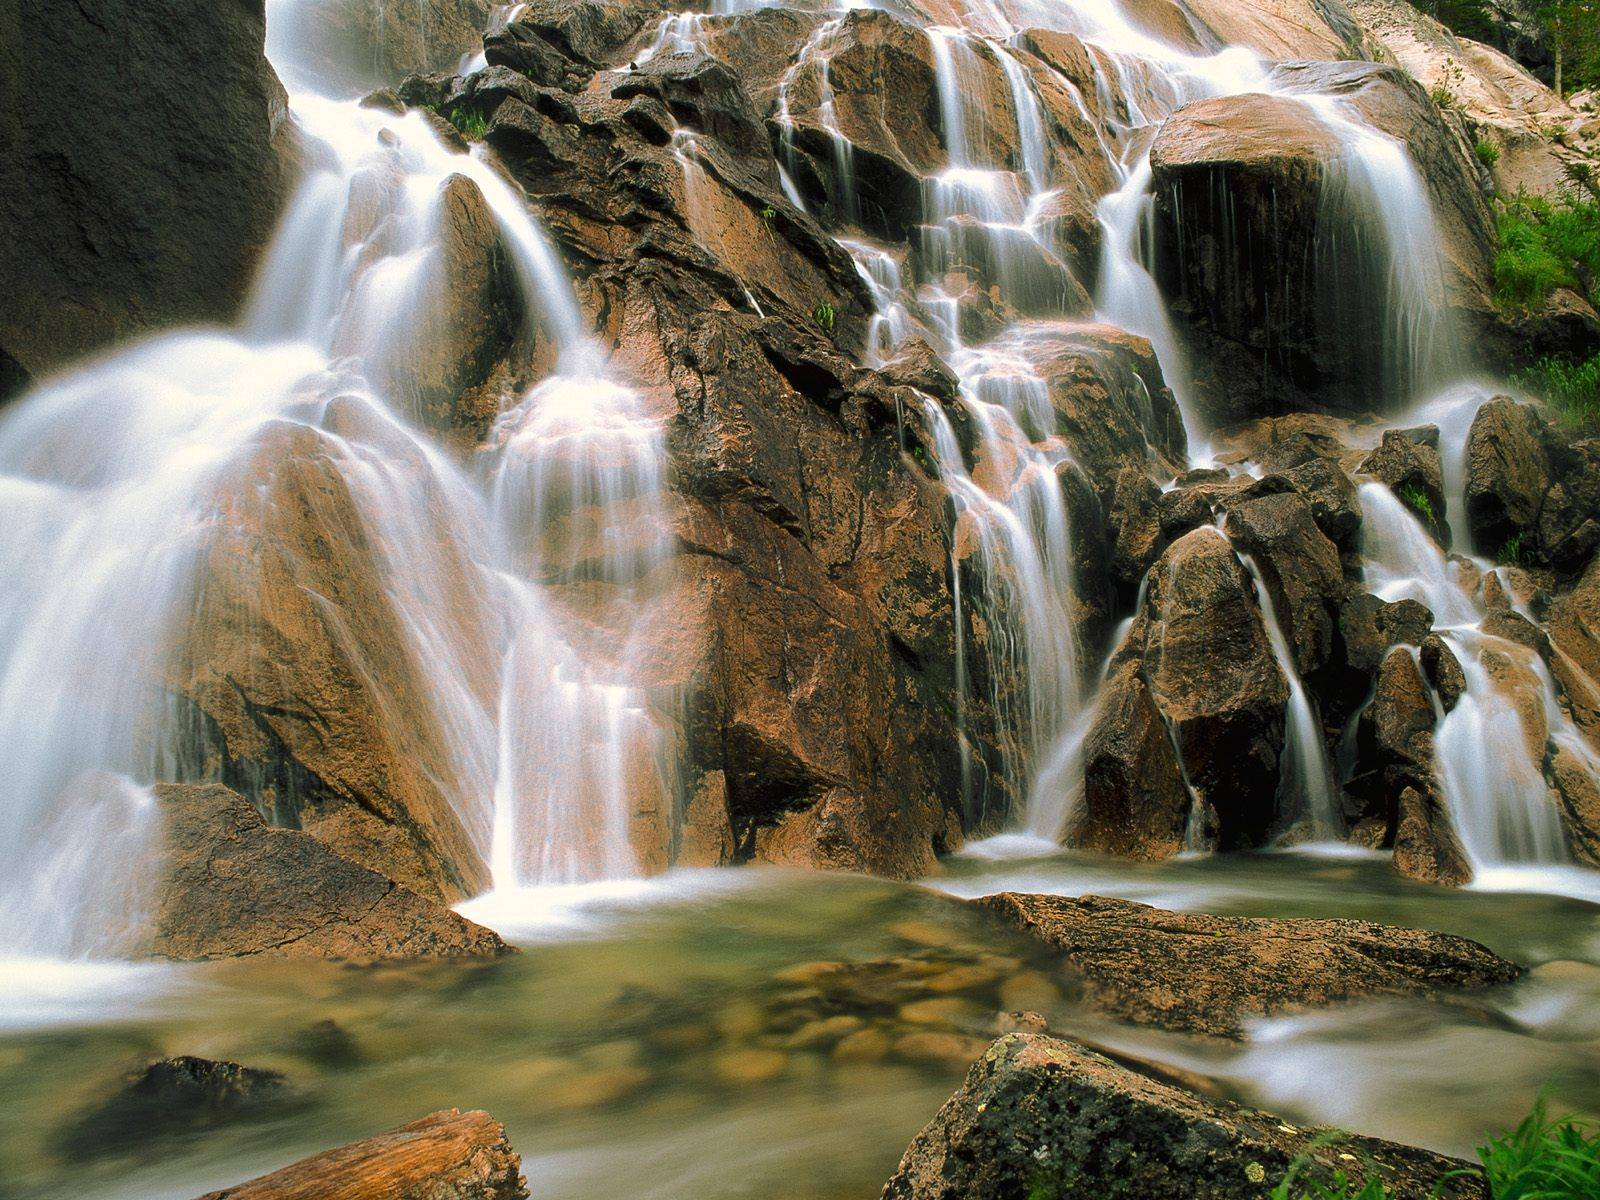 http://grandcanyon.free.fr/images/cascade/original/Cool%20Water,%20Sawtooth%20Wilderness,%20Idaho.jpg